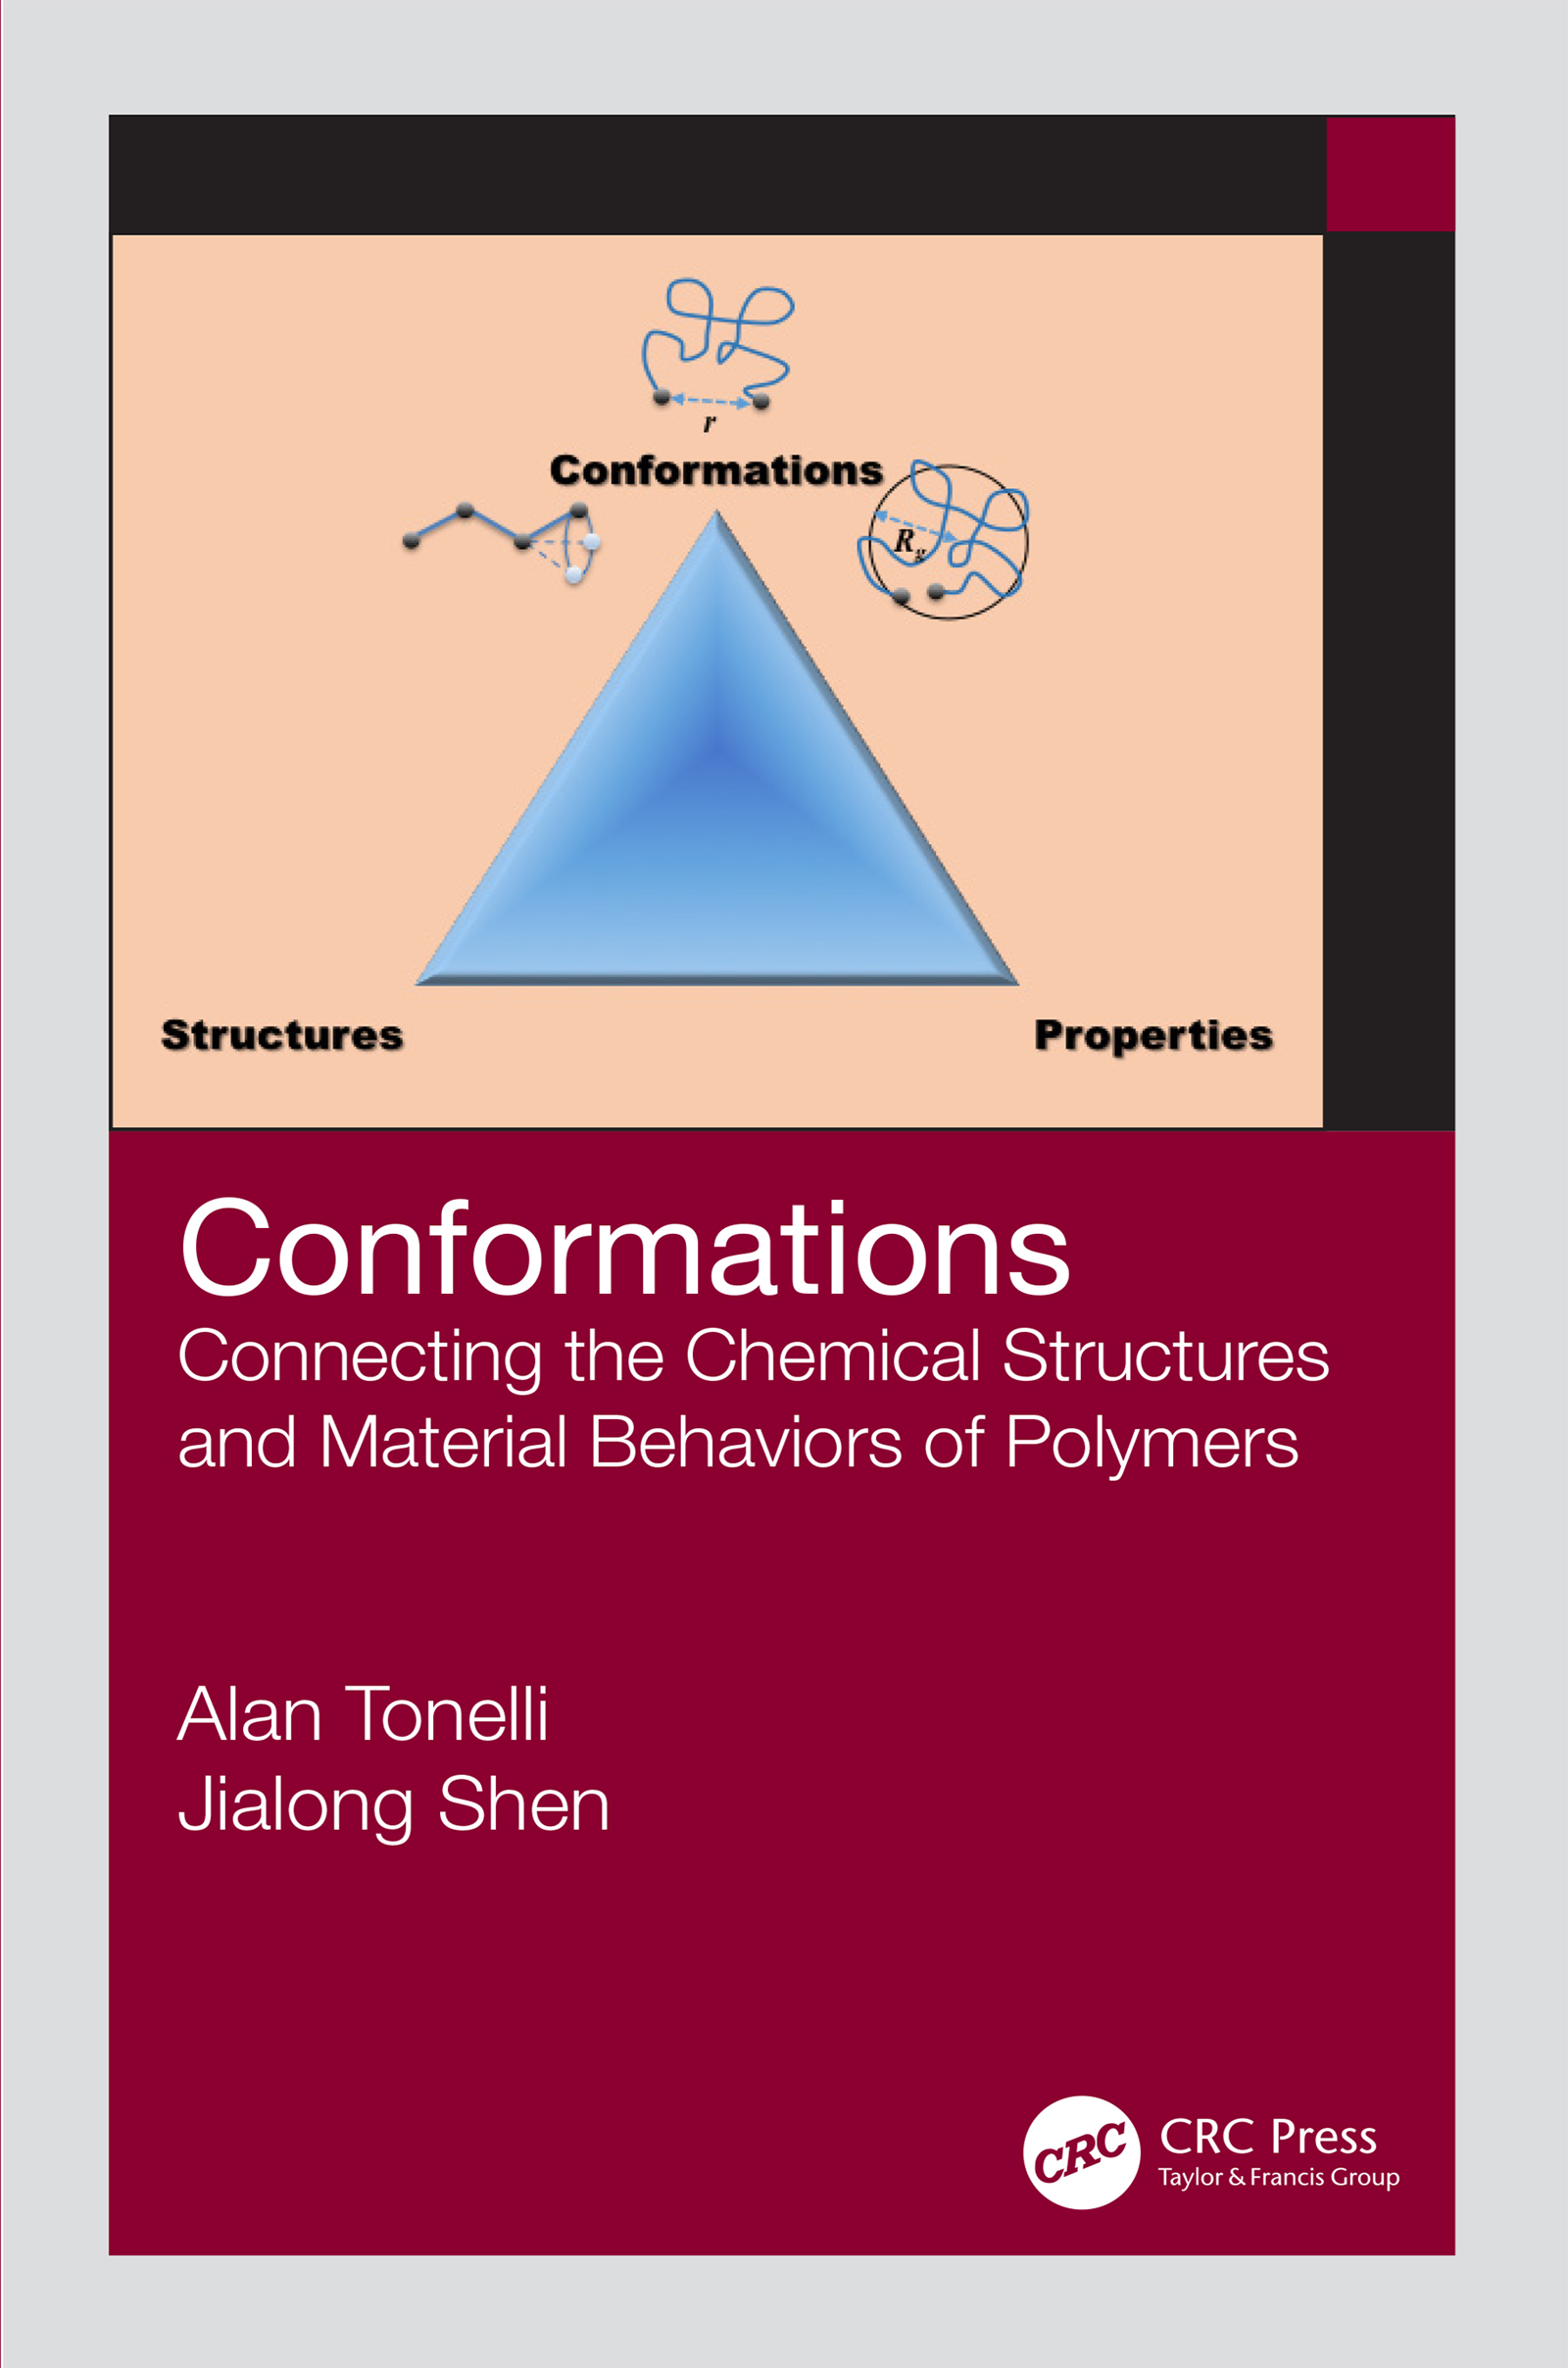 Conformations: Connecting the Chemical Structures and Material Behaviors of Polymers book cover